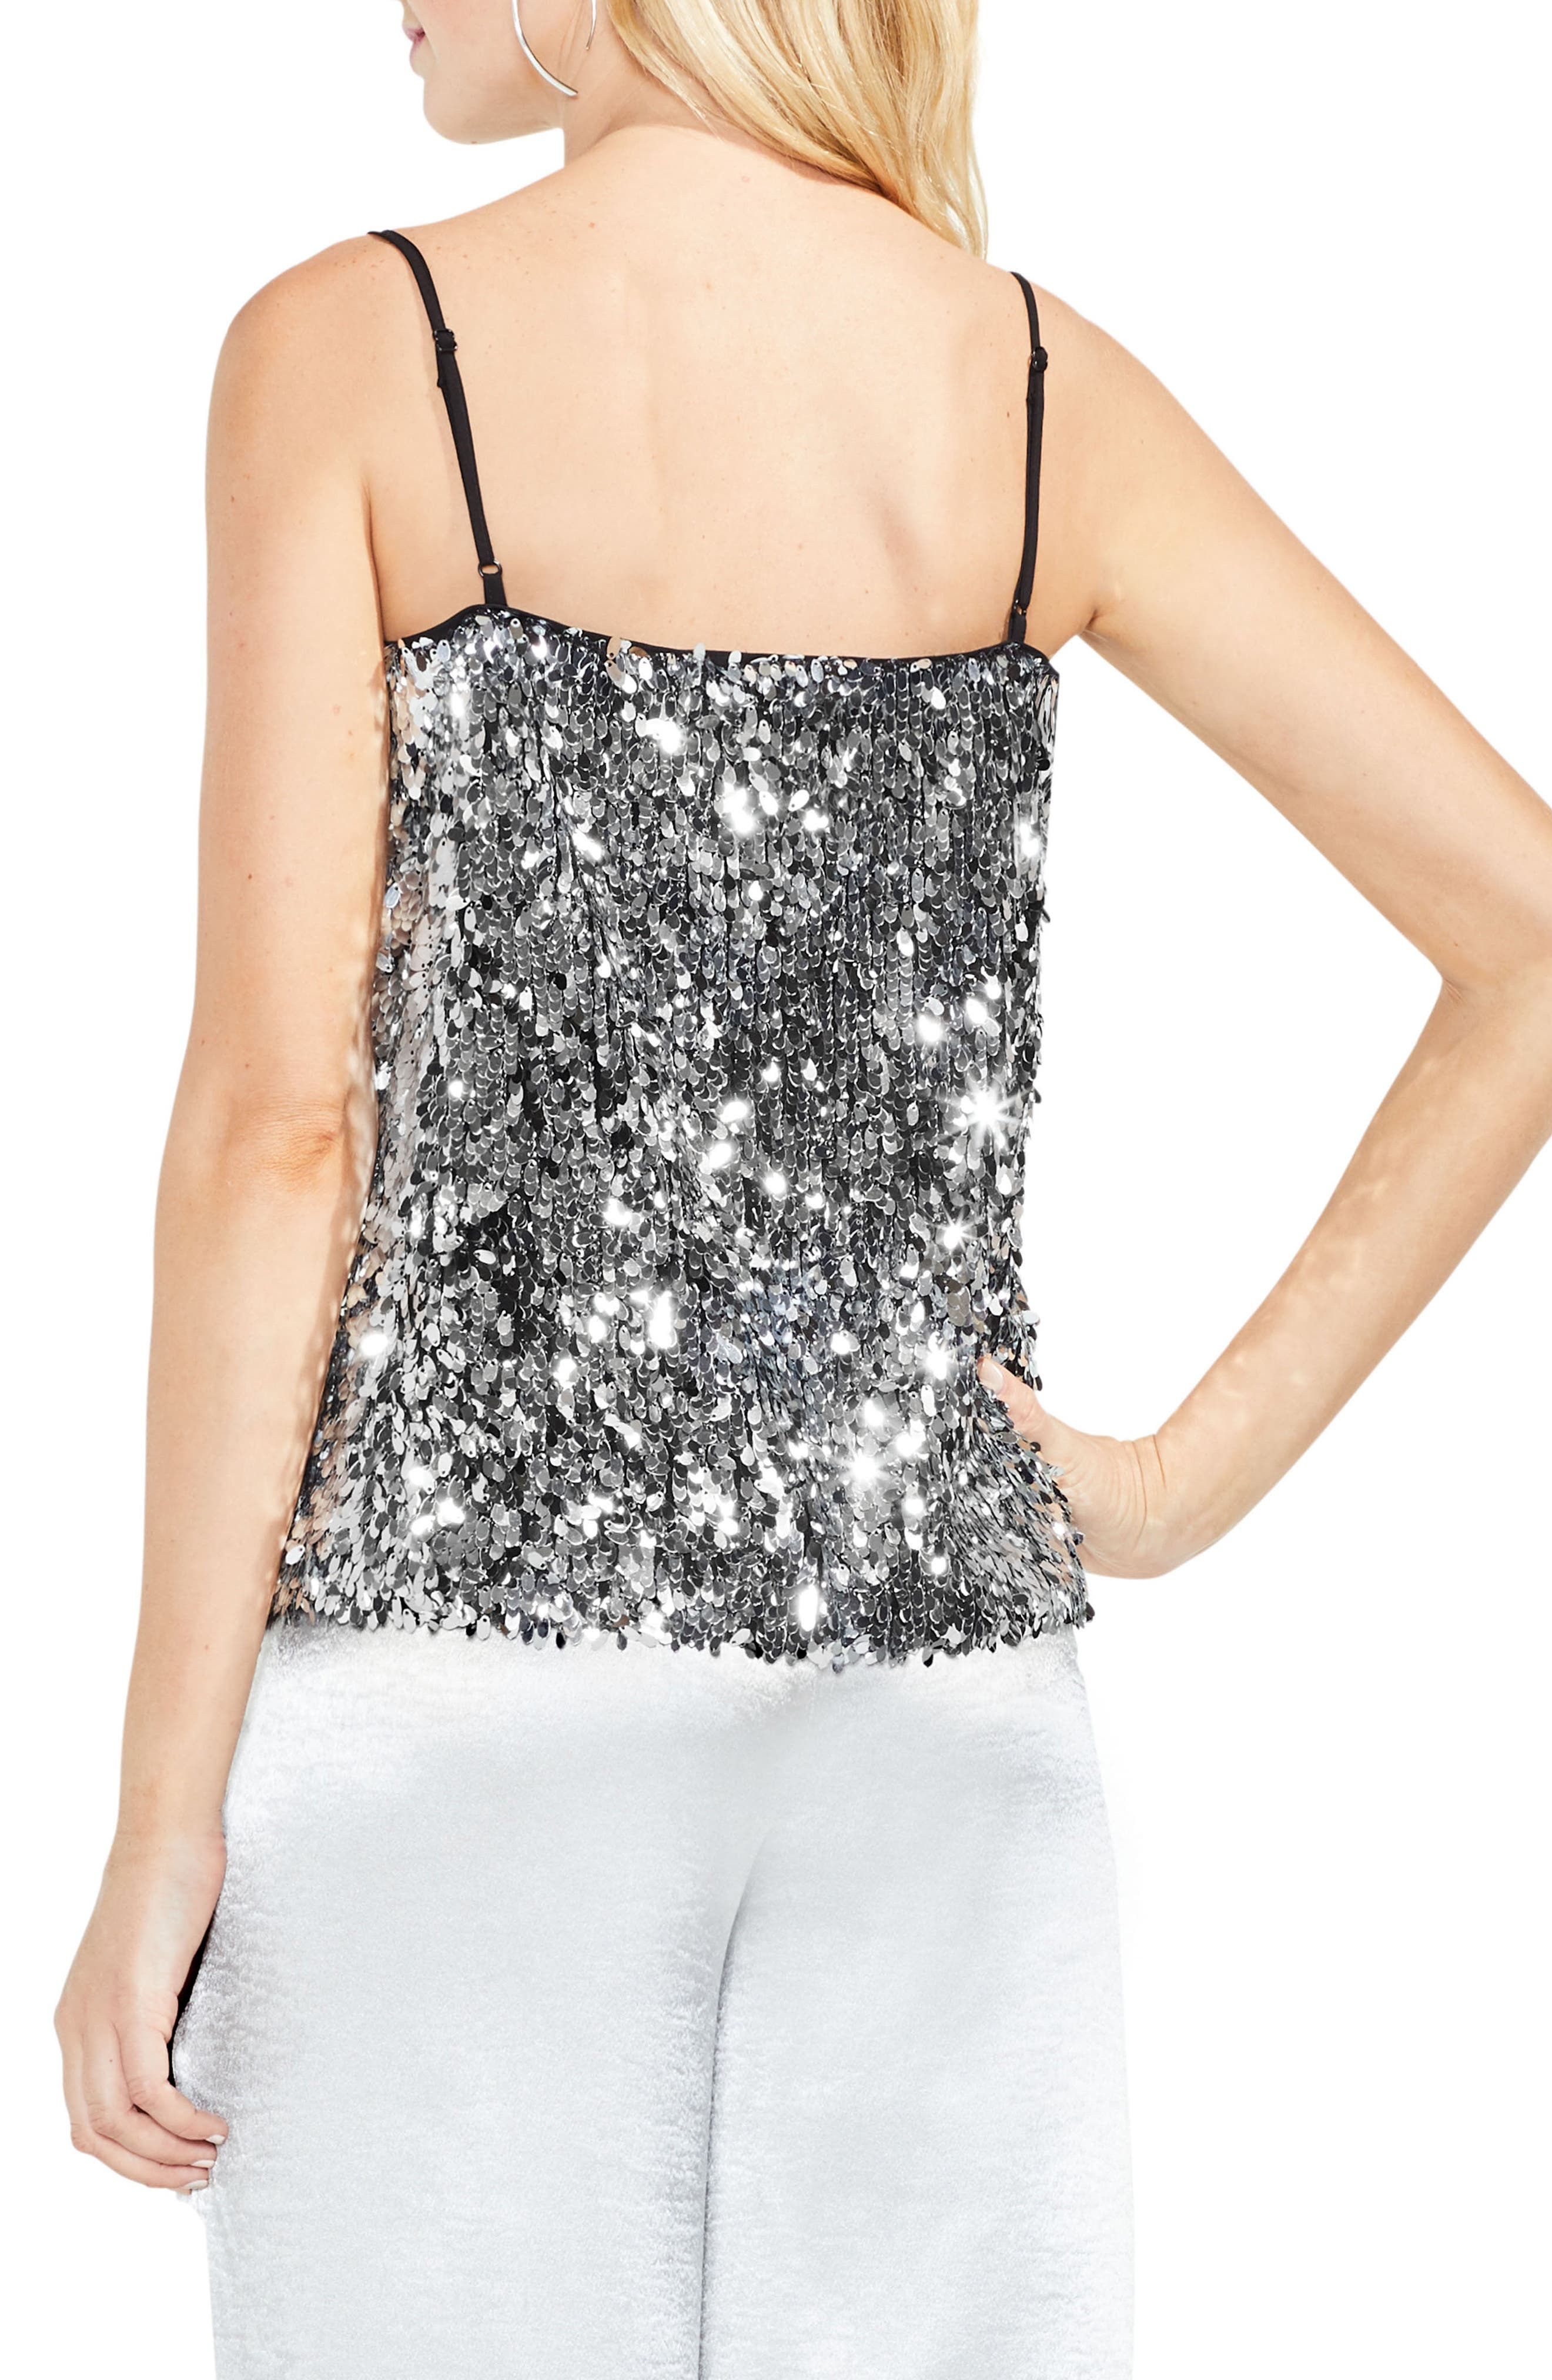 Alternate Image 2  - Vince Camuto Allover Sequin Camisole Top